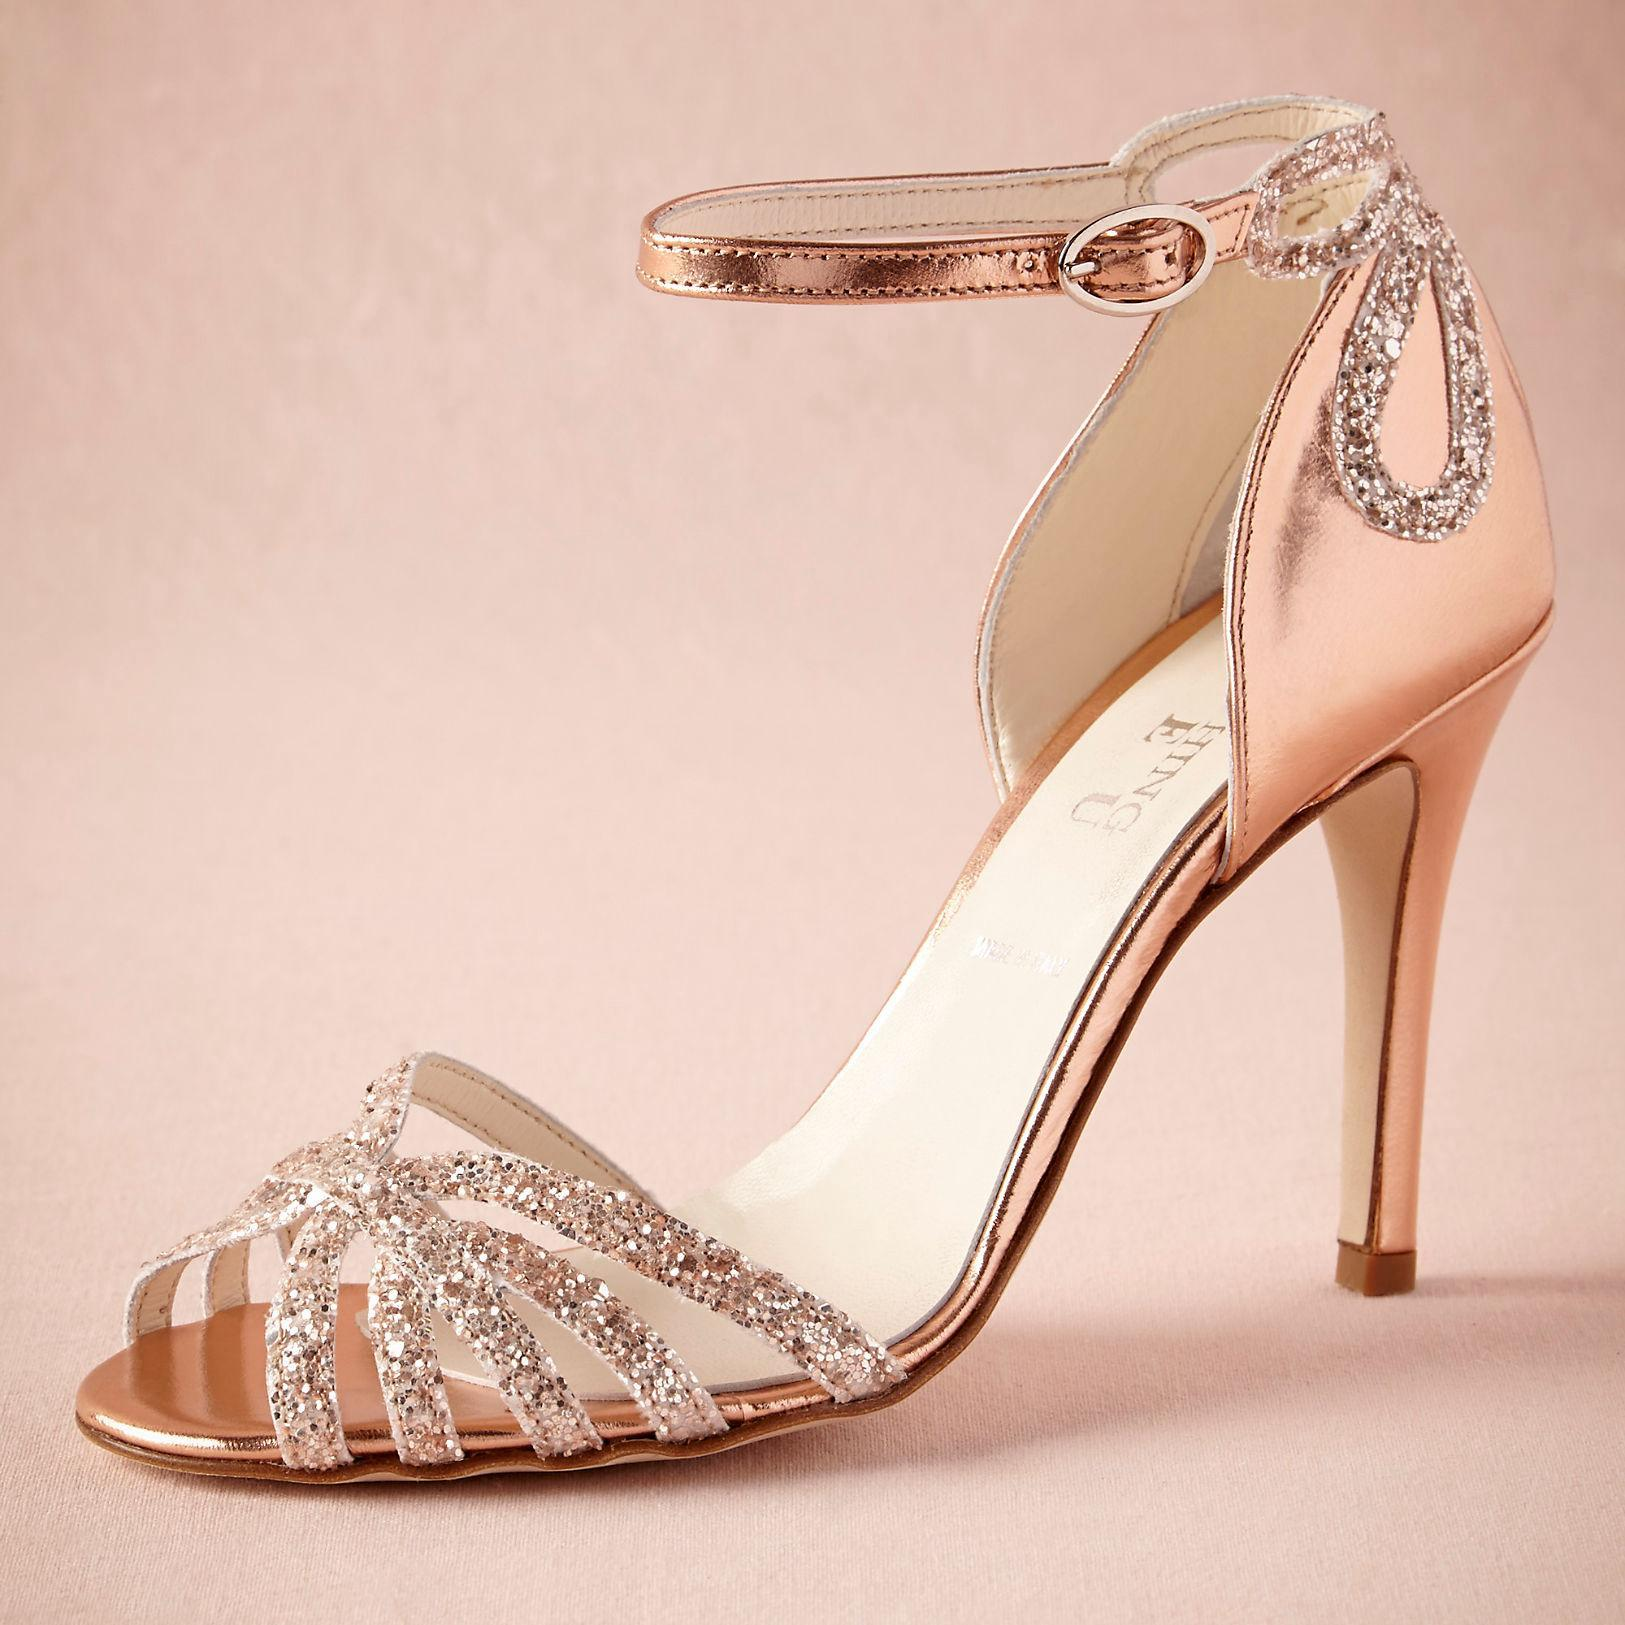 rose-gold-glittered-heel-real-wedding-shoes